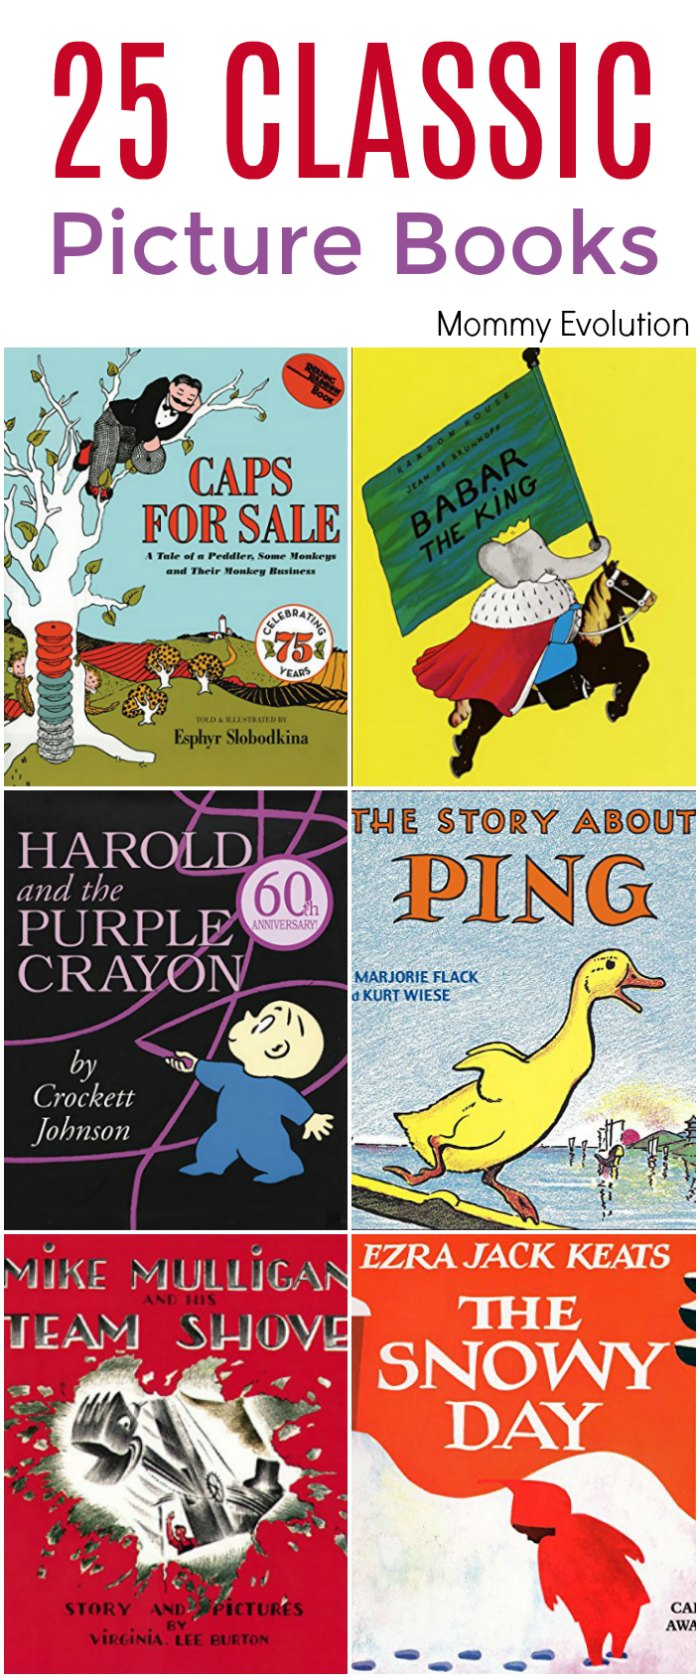 classic picture books for kids!